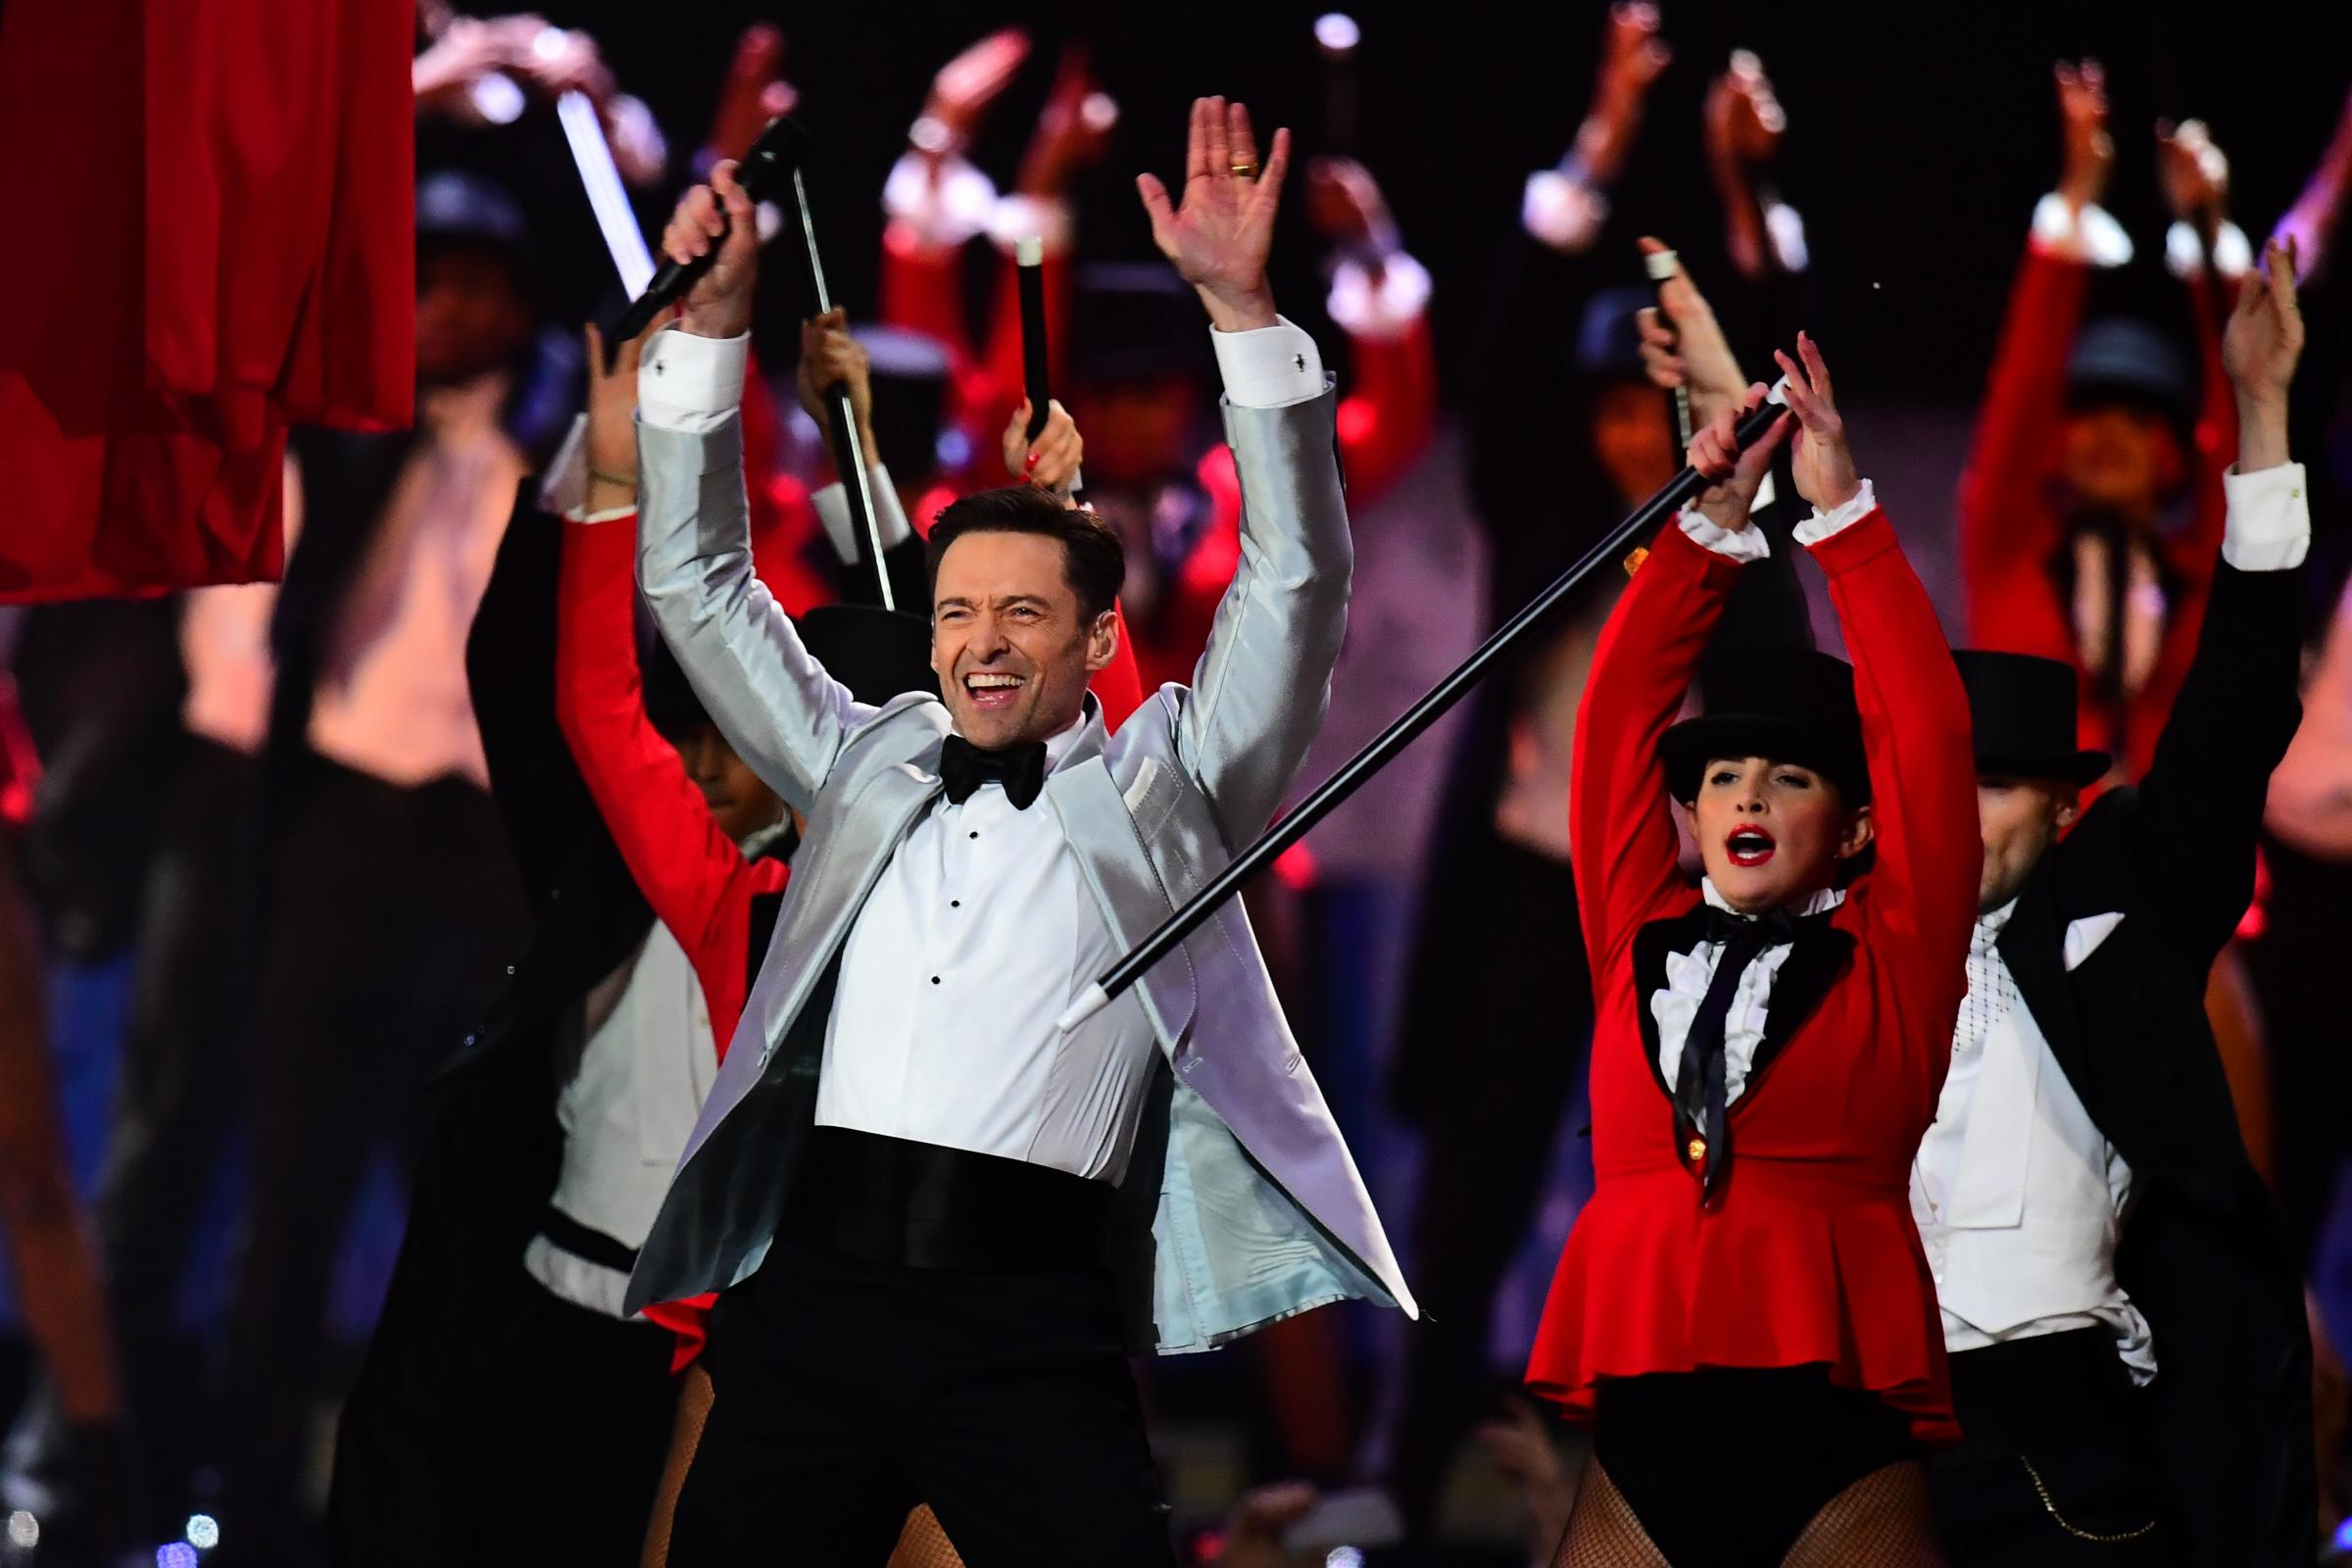 Hugh Jackman on stage at the Brit Awards 2019